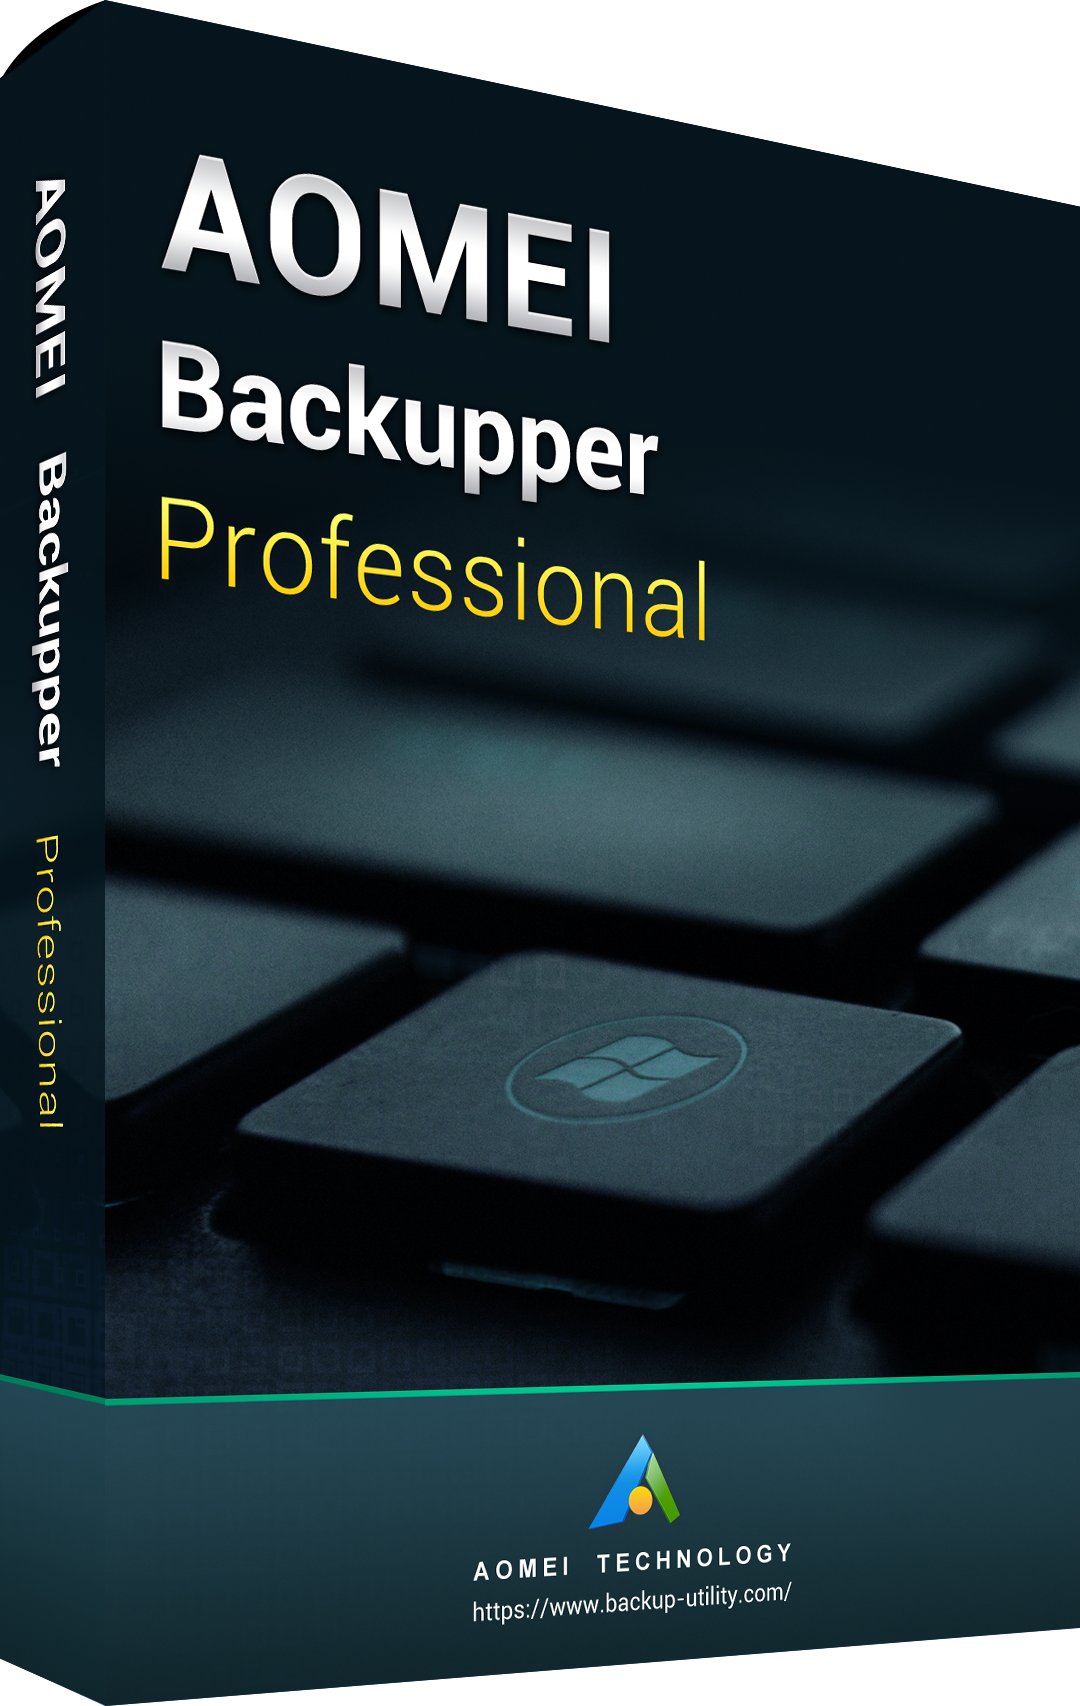 AOMEI Backupper Professional 5.6 Key Global